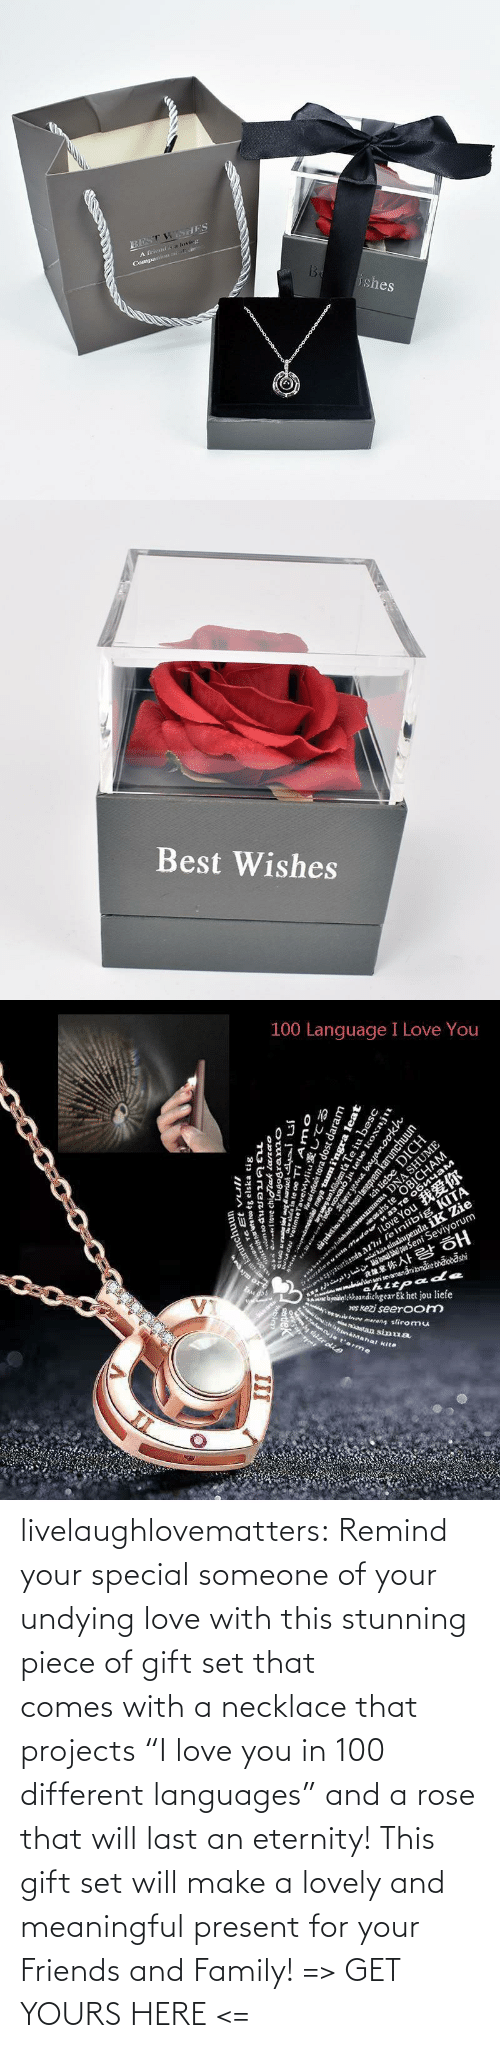 "will: livelaughlovematters:  Remind your special someone of your undying love with this stunning piece of gift set that comes with a necklace that projects ""I love you in 100 different languages"" and a rose that will last an eternity! This gift set will make a lovely and meaningful present for your Friends and Family! => GET YOURS HERE <="